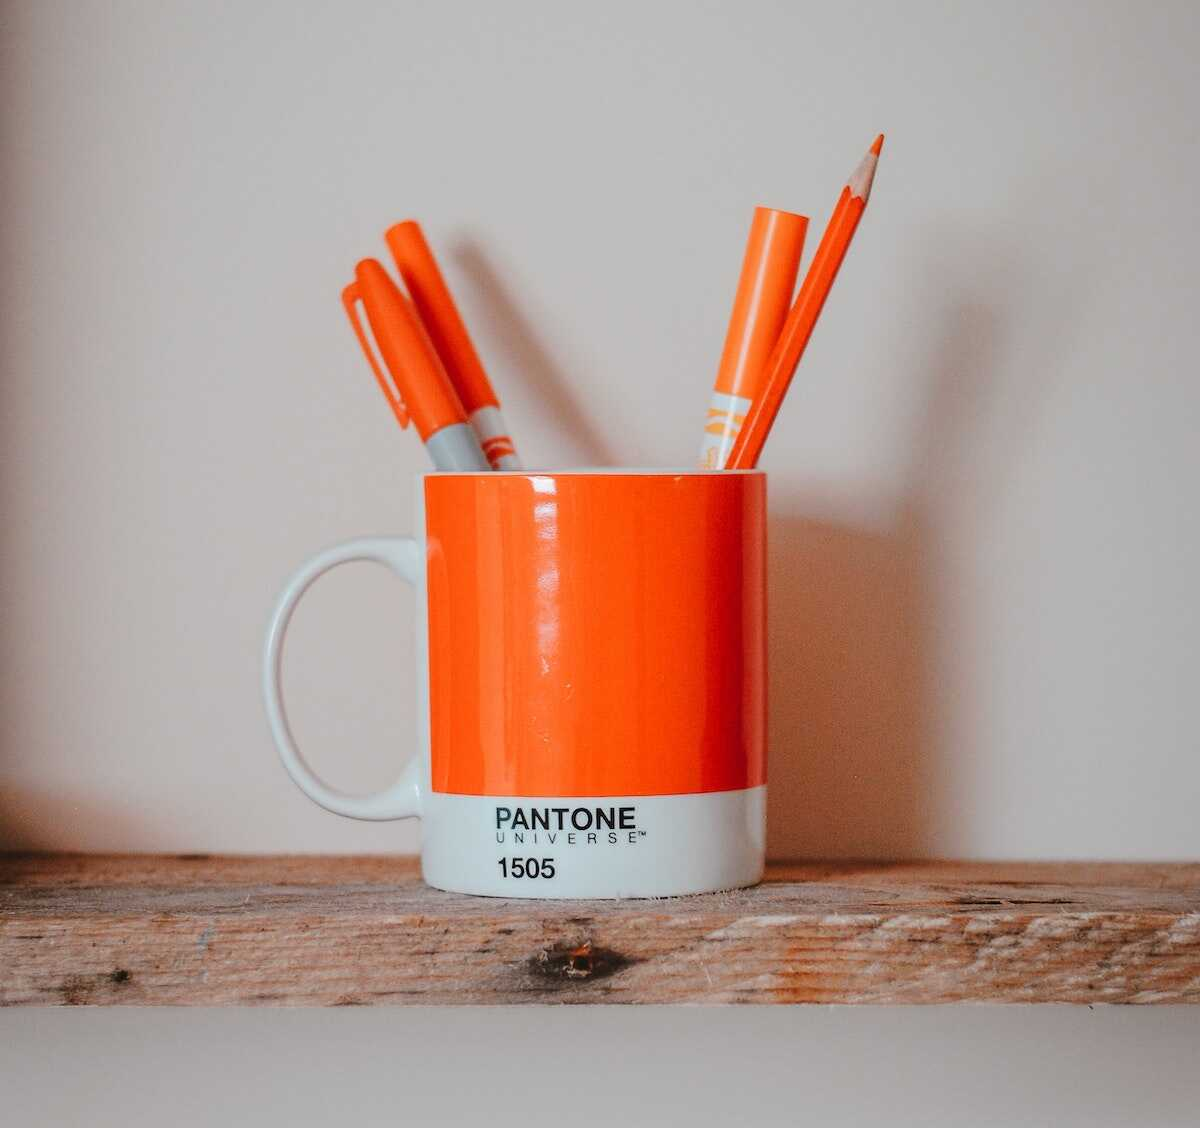 Orange pantone mug holding orange pens and pencils